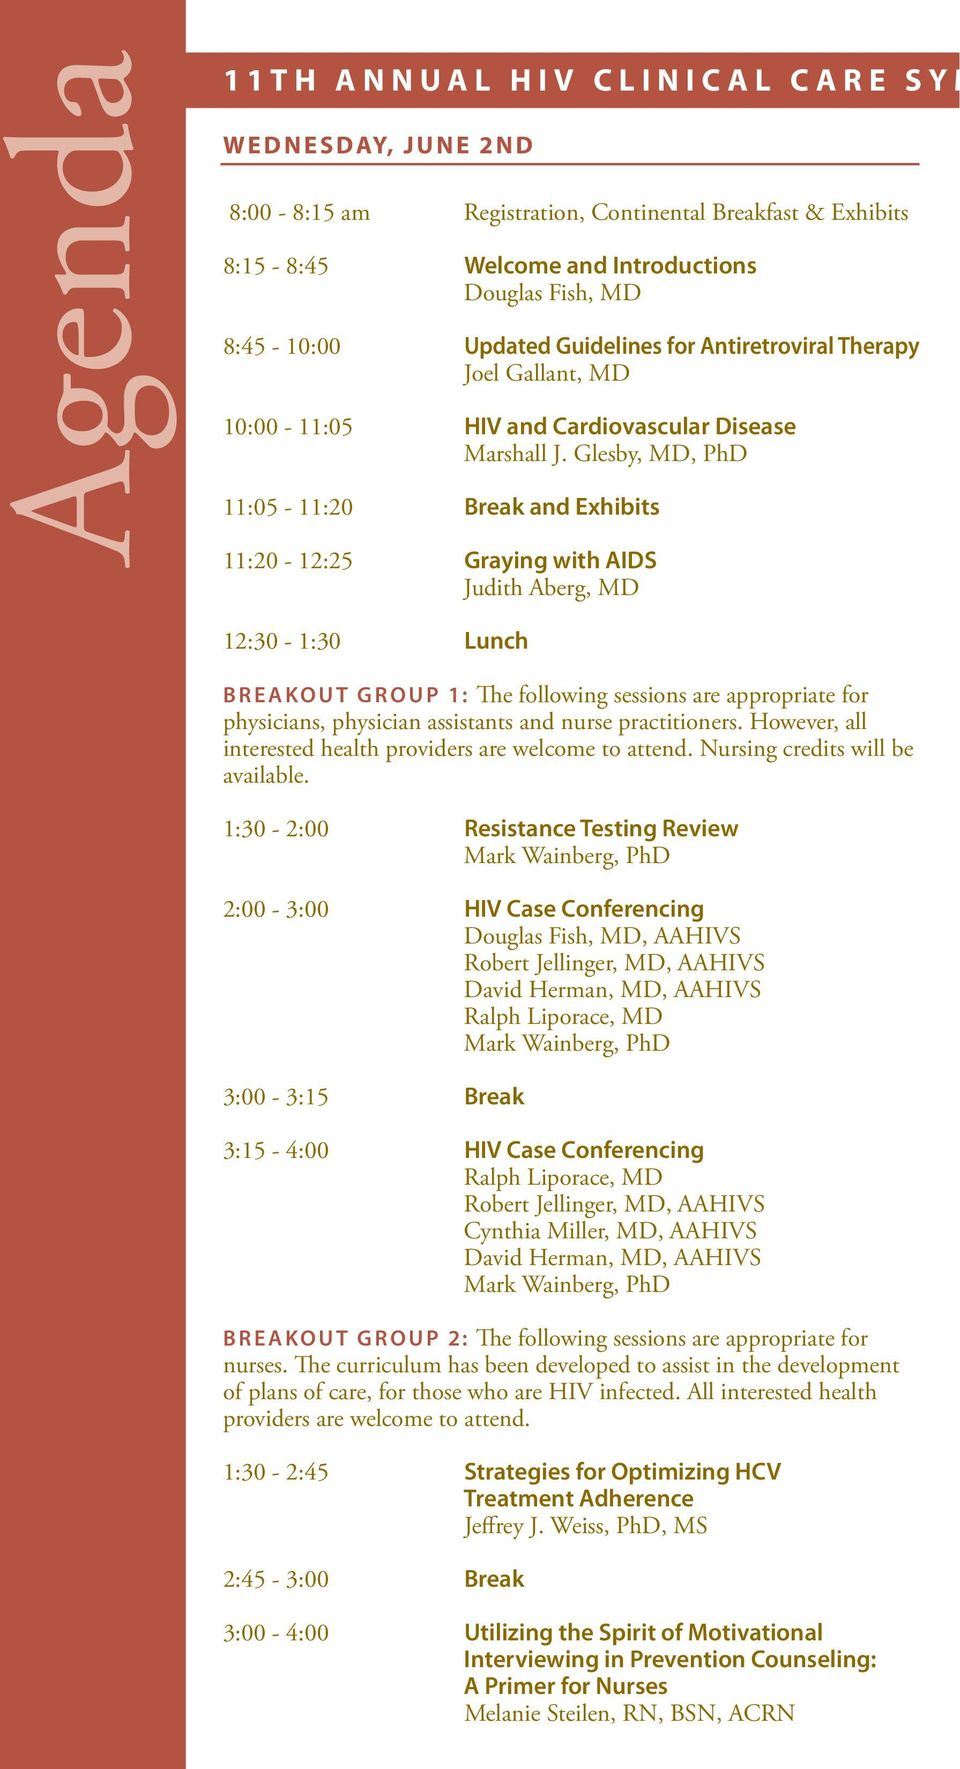 Glesby, MD, PhD 11:05-11:20 Break and Exhibits 11:20-12:25 Graying with AIDS Judith Aberg, MD 12:30-1:30 Lunch BREAKOUT GROUP 1: The following sessions are appropriate for physicians, physician